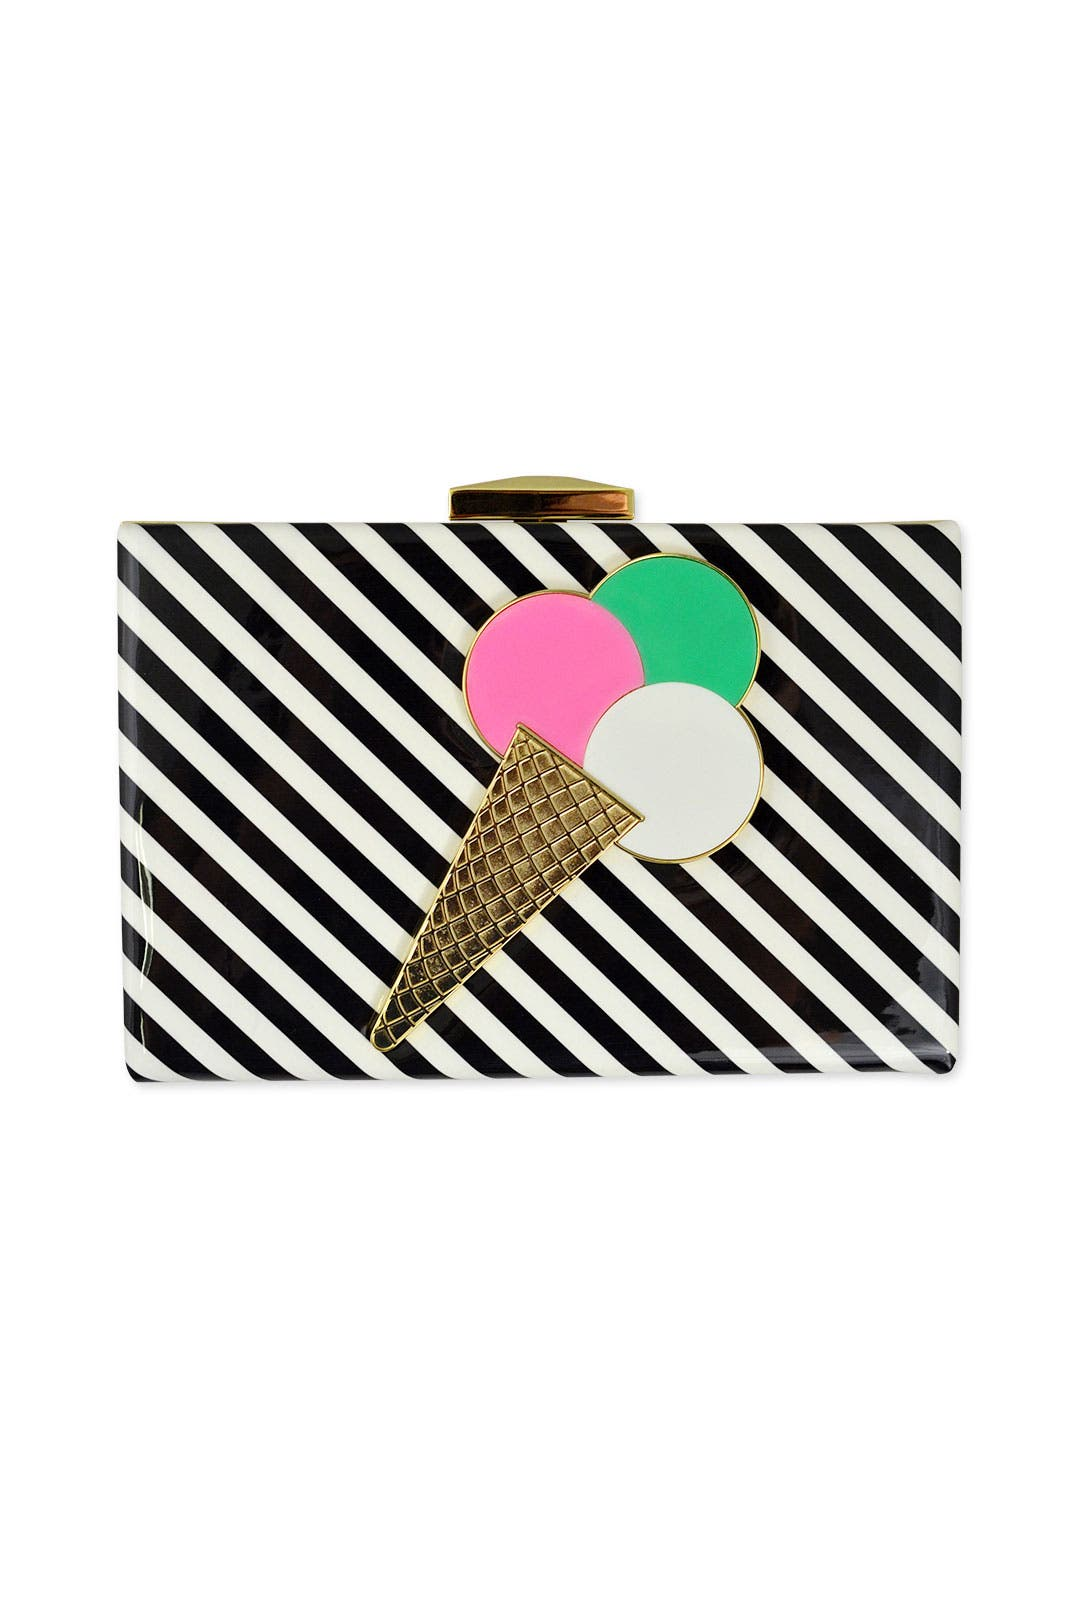 DELETE NODE by kate spade new york accessories